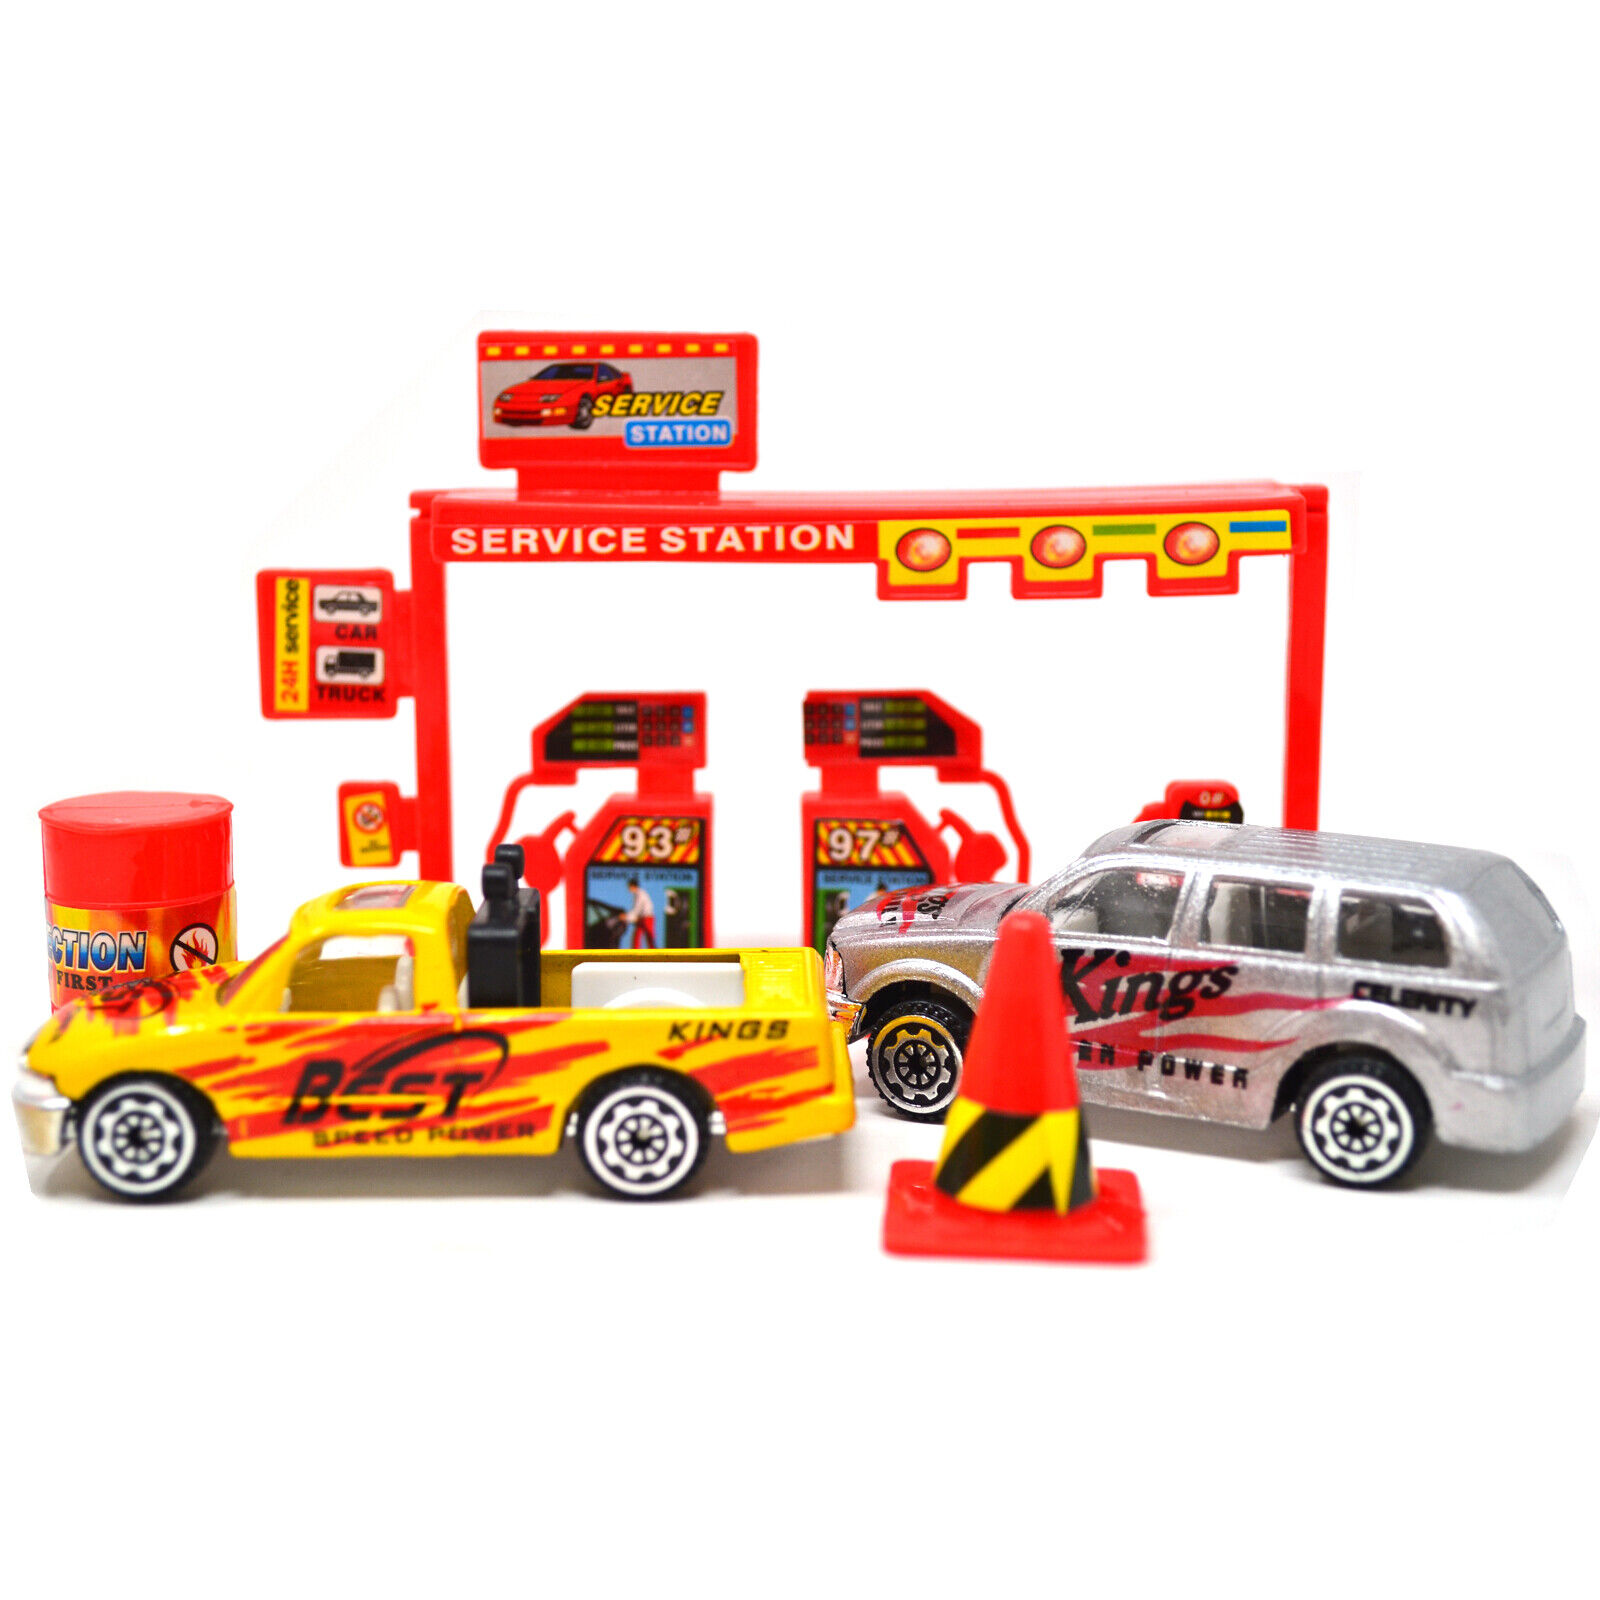 64PC FIRE RESCUE TRACK KIDS FUN METAL CARS GIFT TOY DIY GARAGE SET RACE XMAS NEW